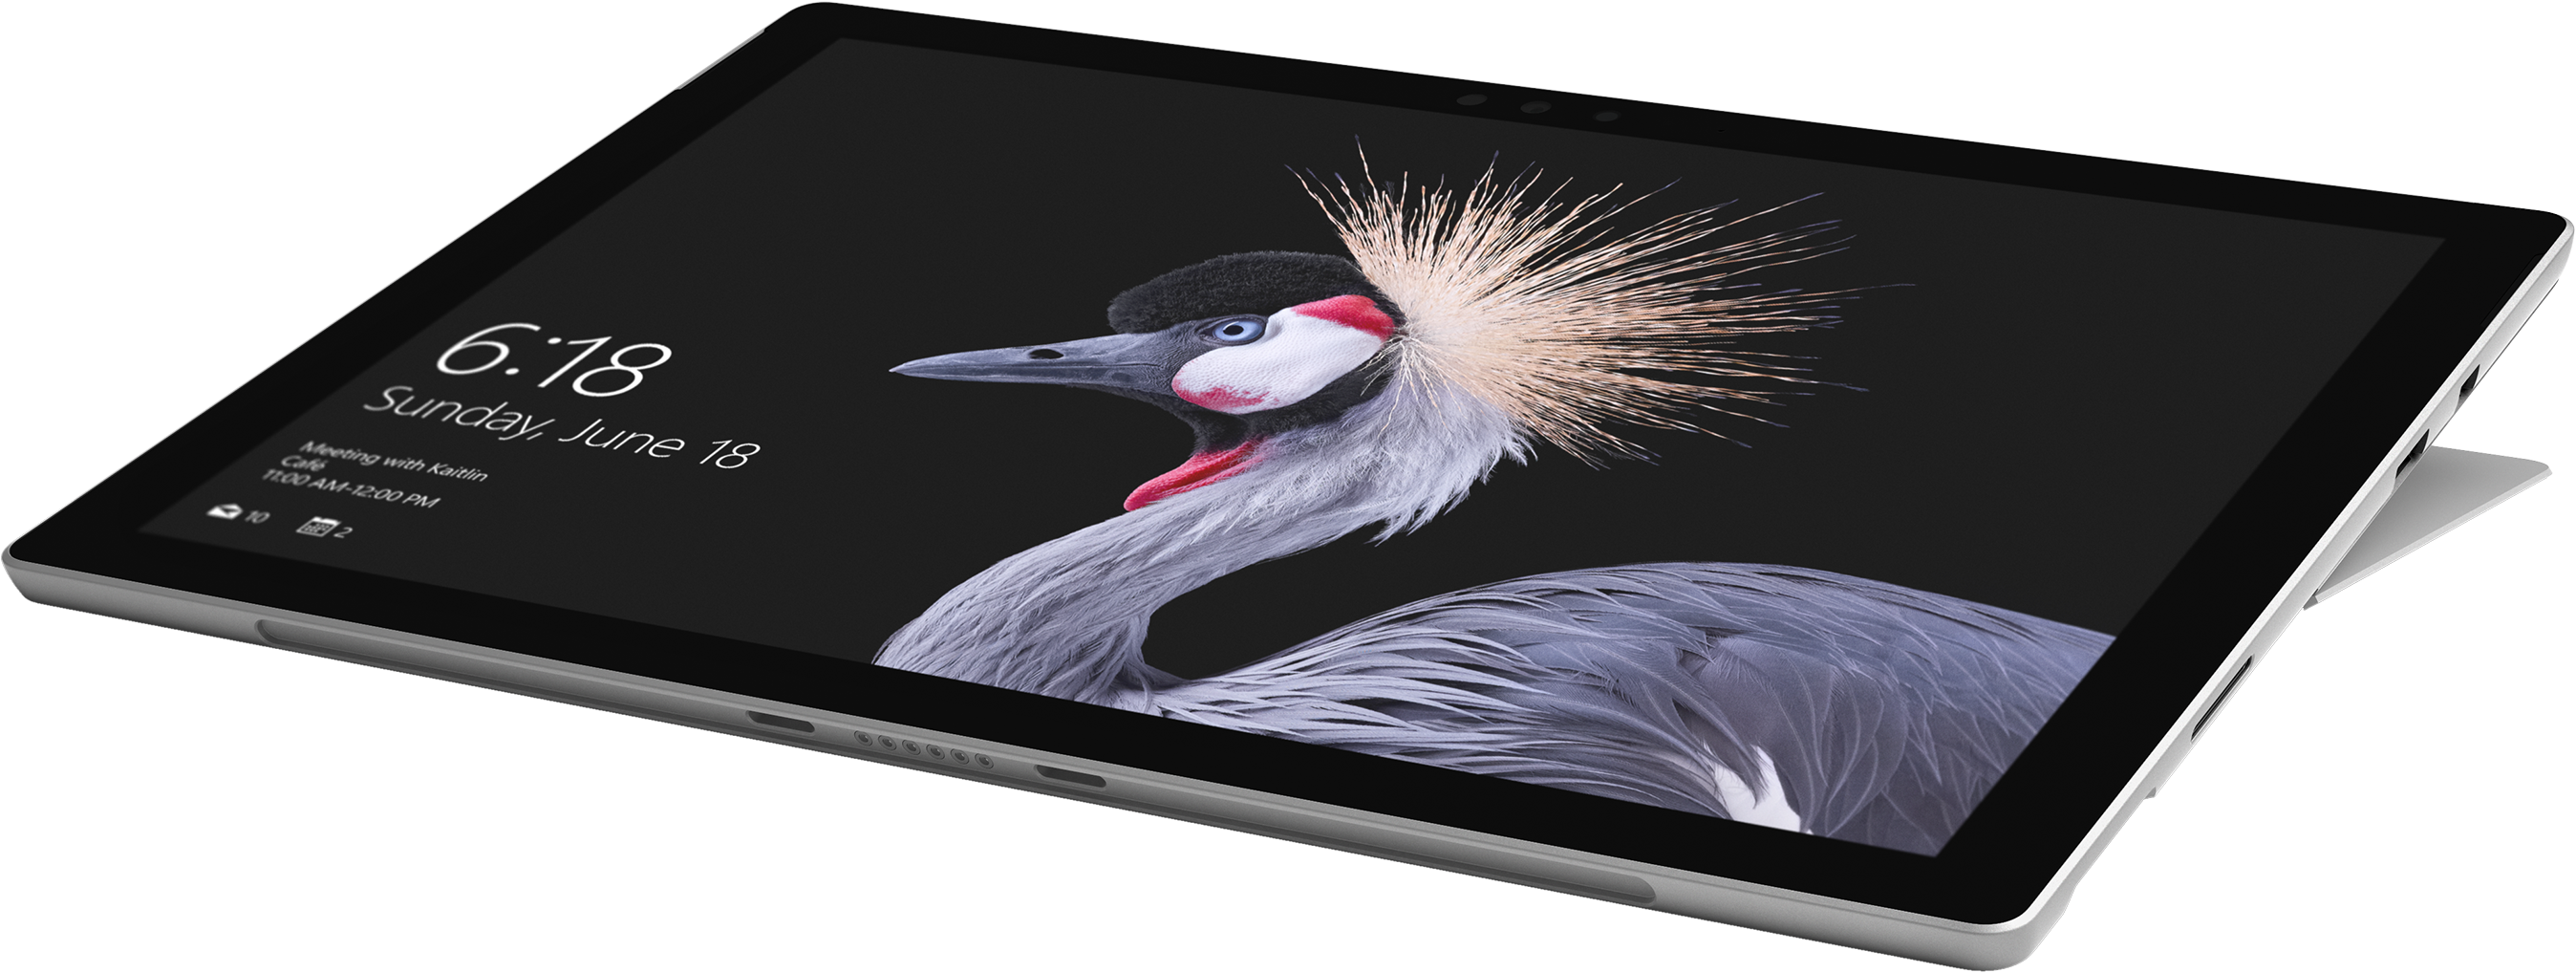 Surface Pro Cyber Monday Deal